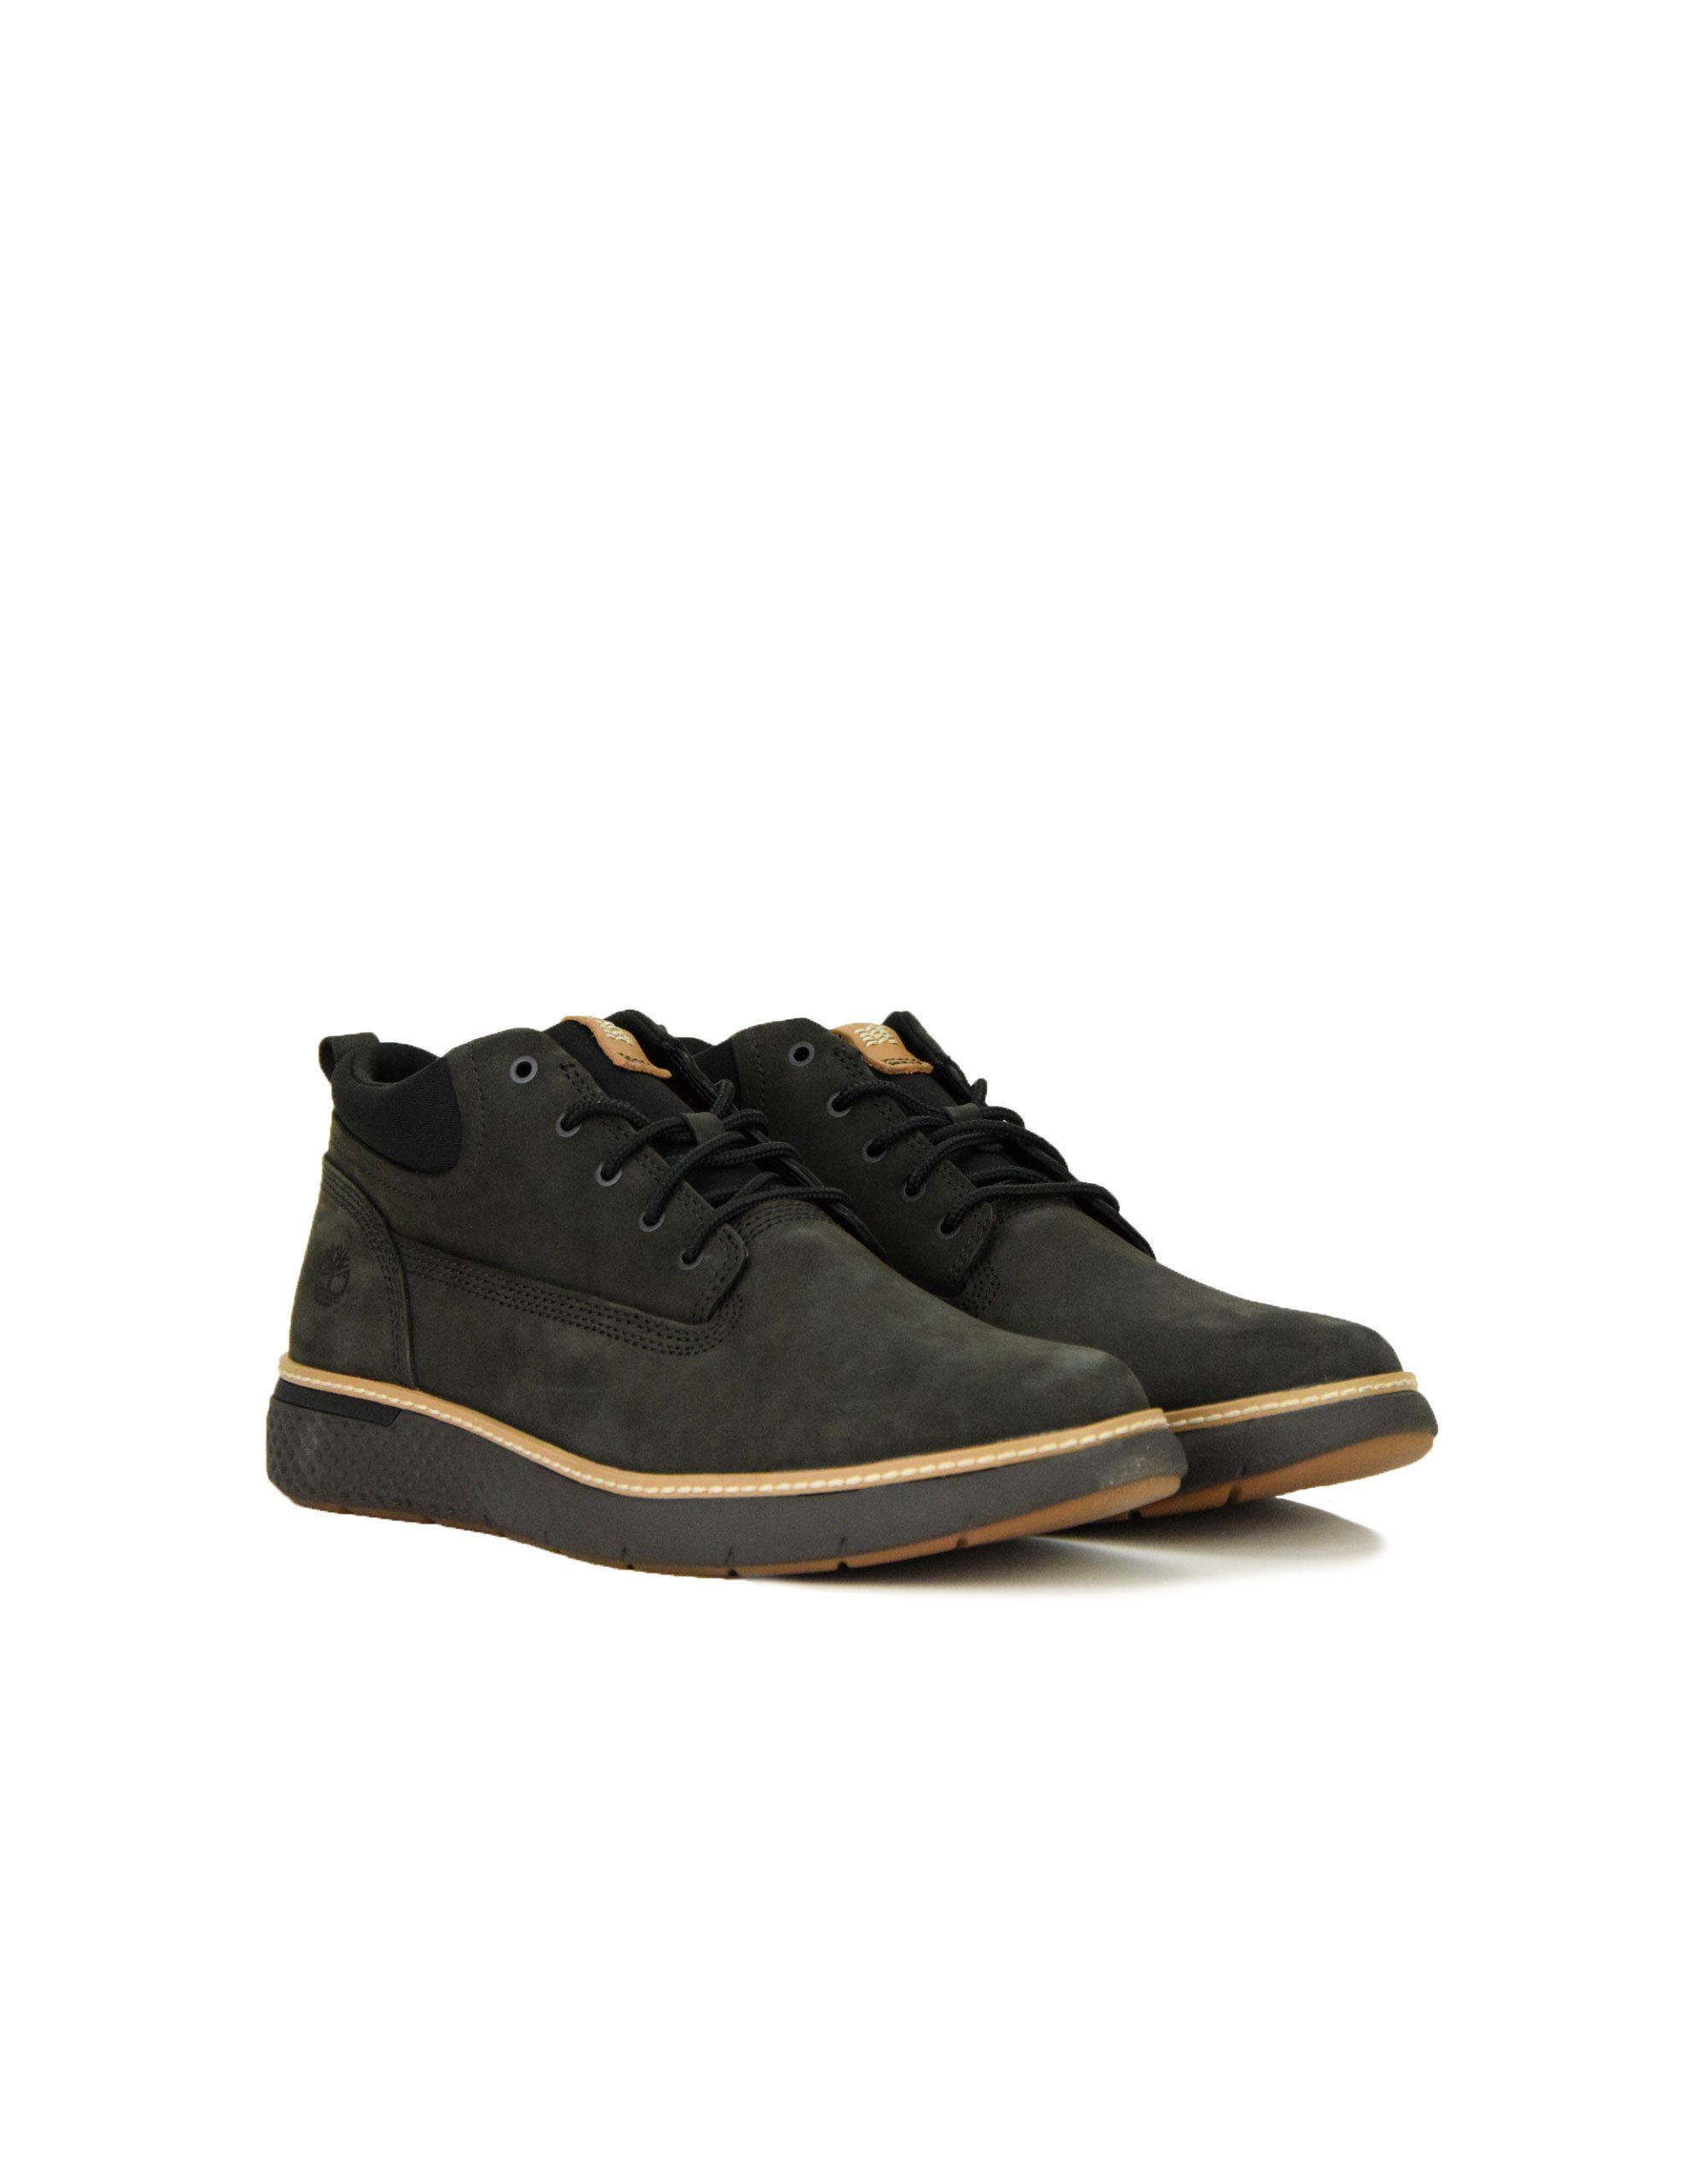 Timberland Cross Mark Chukka Nubuck (TB0A26BEP01) Dark Green